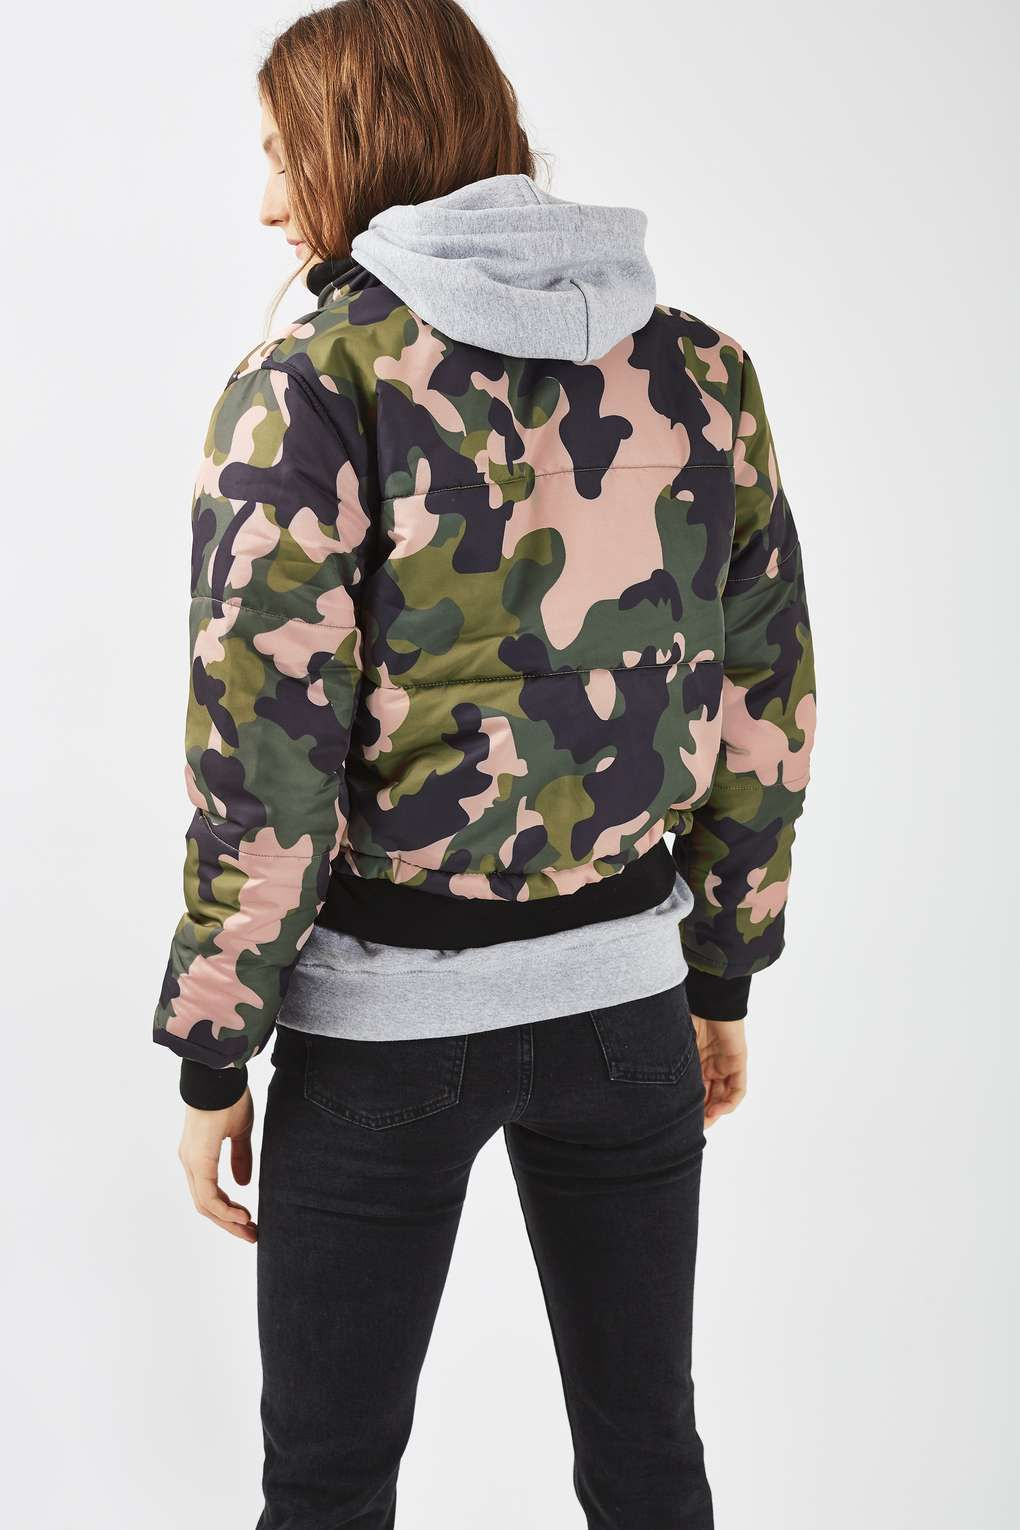 Pink Camo Puffer Jacket - Jackets & Coats - Clothing | Pink camo ...